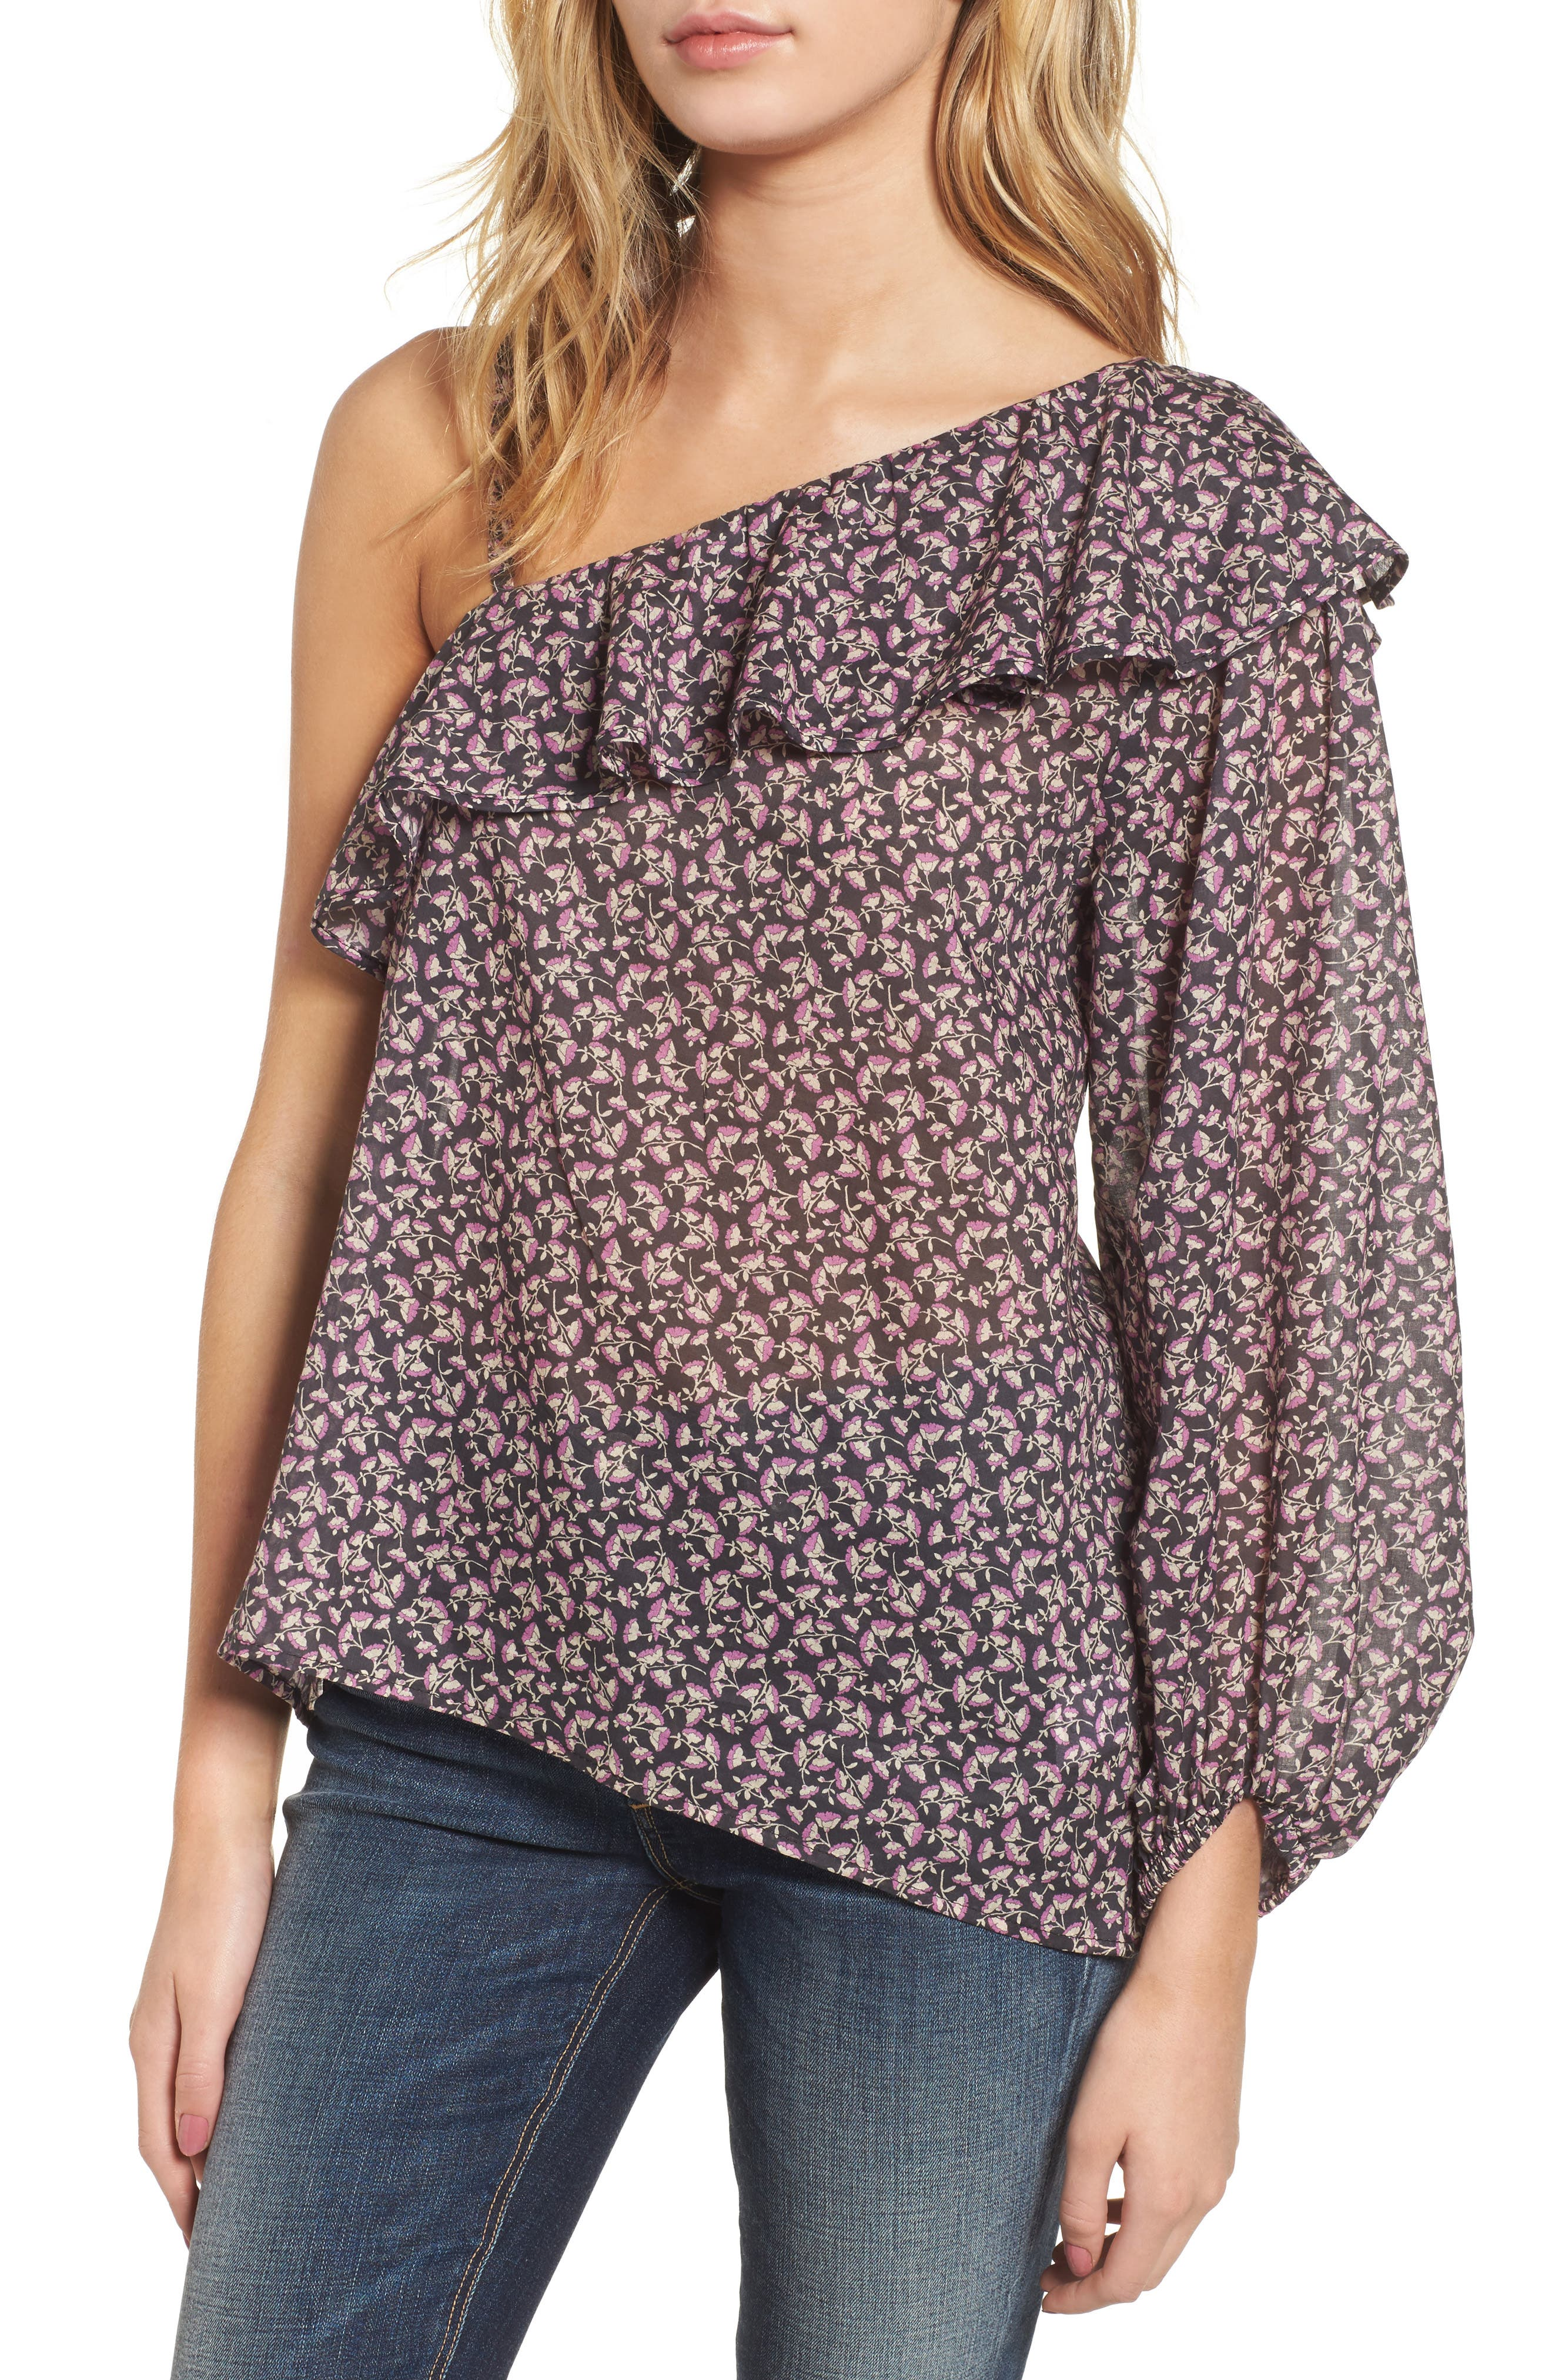 McGuire The Brightside One-Shoulder Top